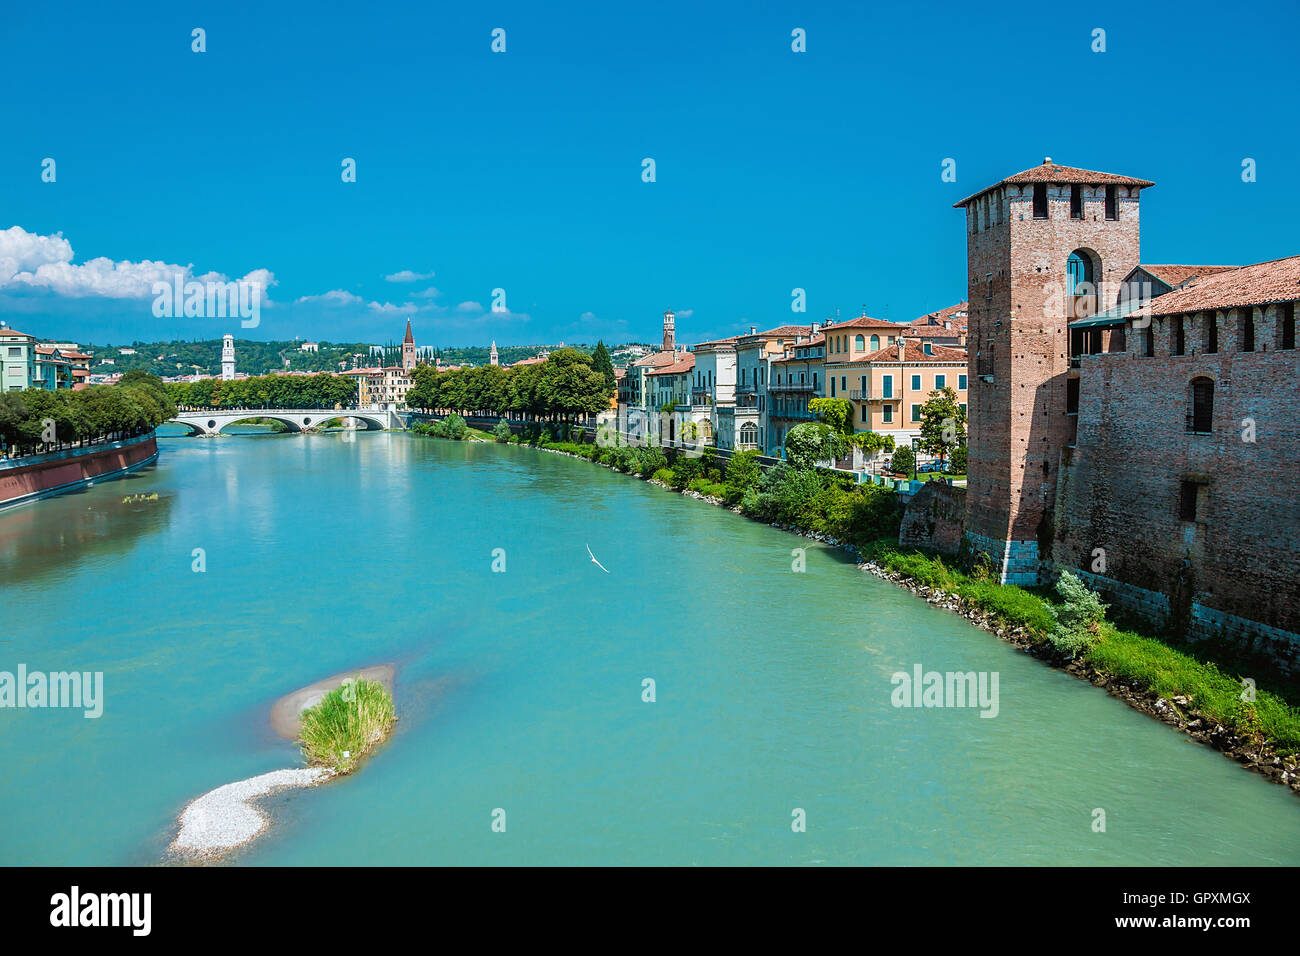 Ponte Pietra on river Adige, ancient roman bridge in the old town of Verona, Italy - Stock Image